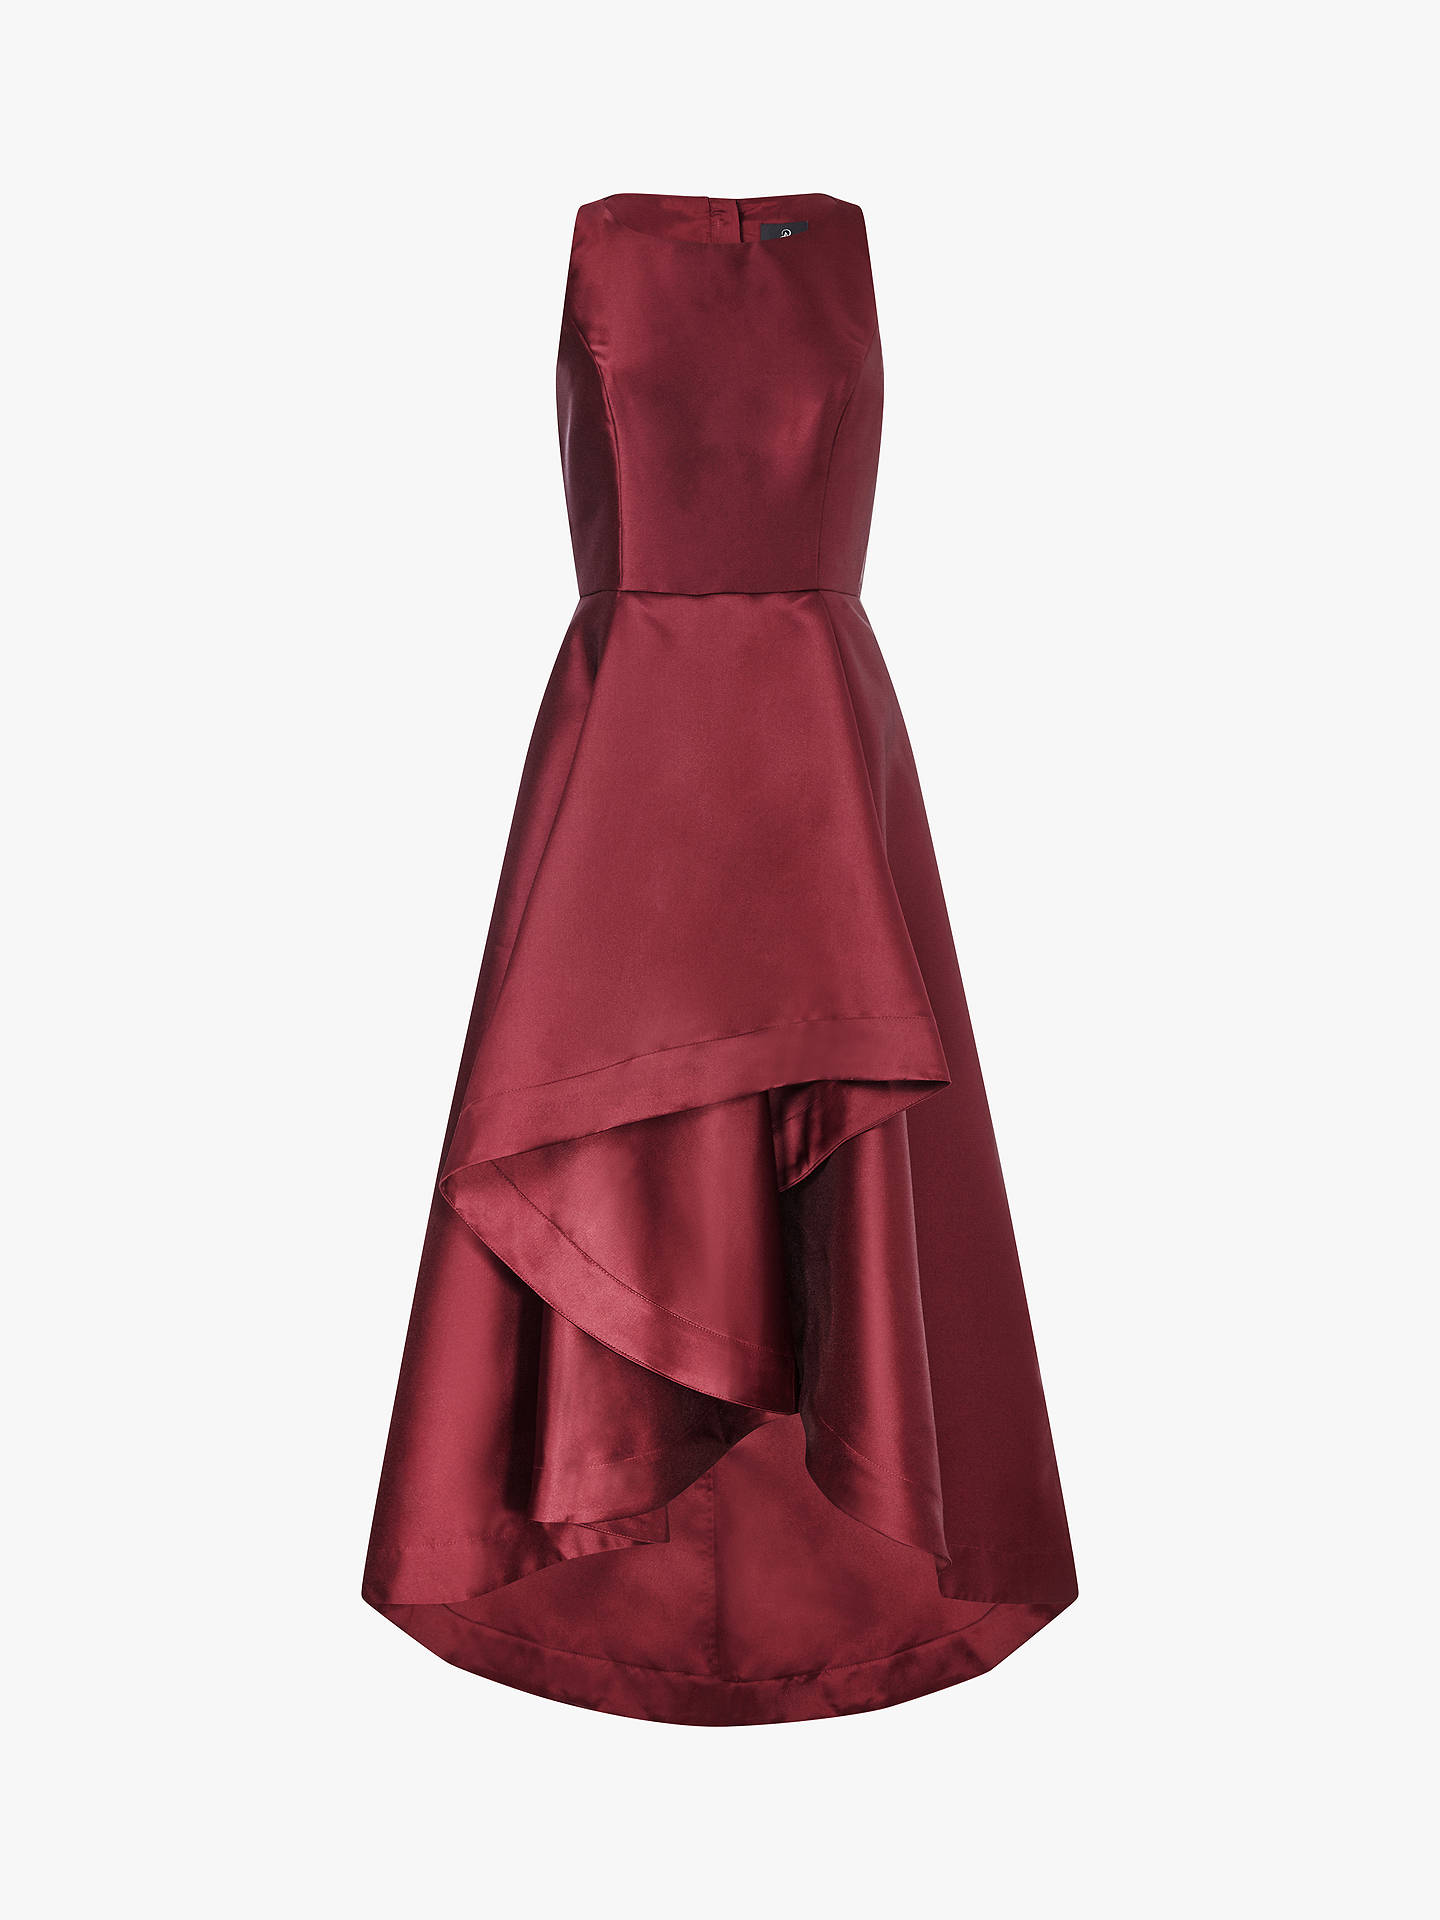 BuyAdrianna Papell Mikado A-Line High Low Dress, Garnet, 8 Online at johnlewis.com